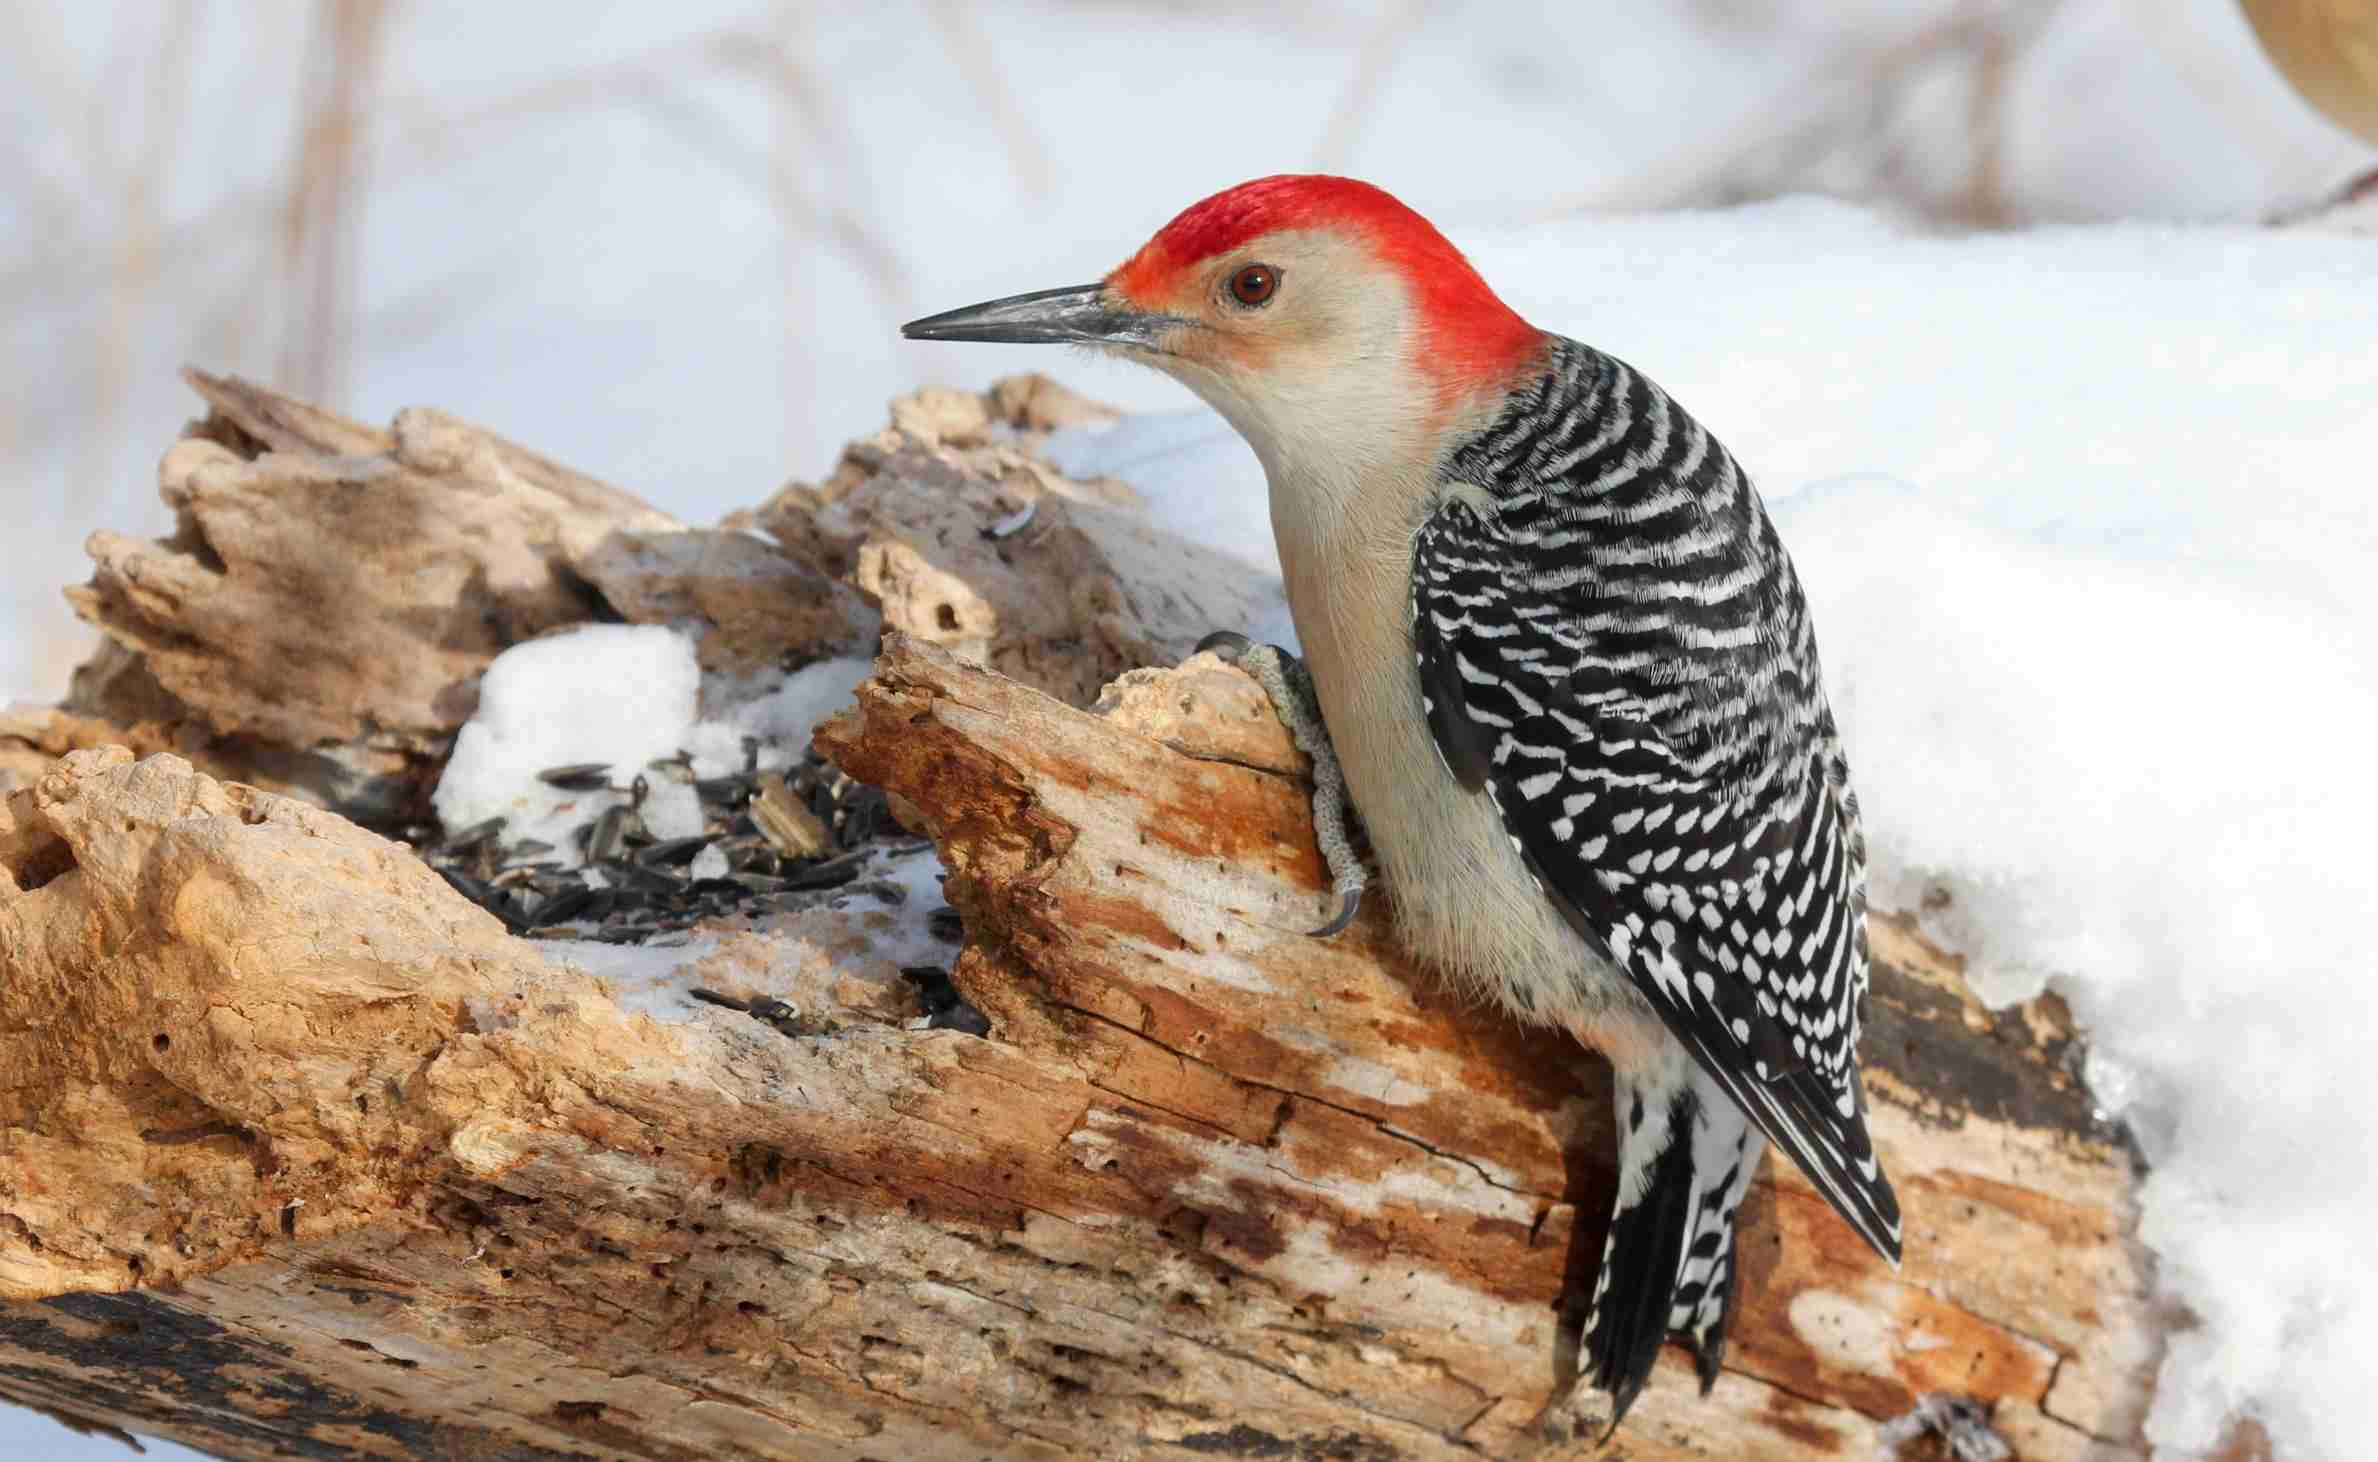 Red-bellied woodpecker at Theodore Roosevelt Sanctuary and Audubon Center